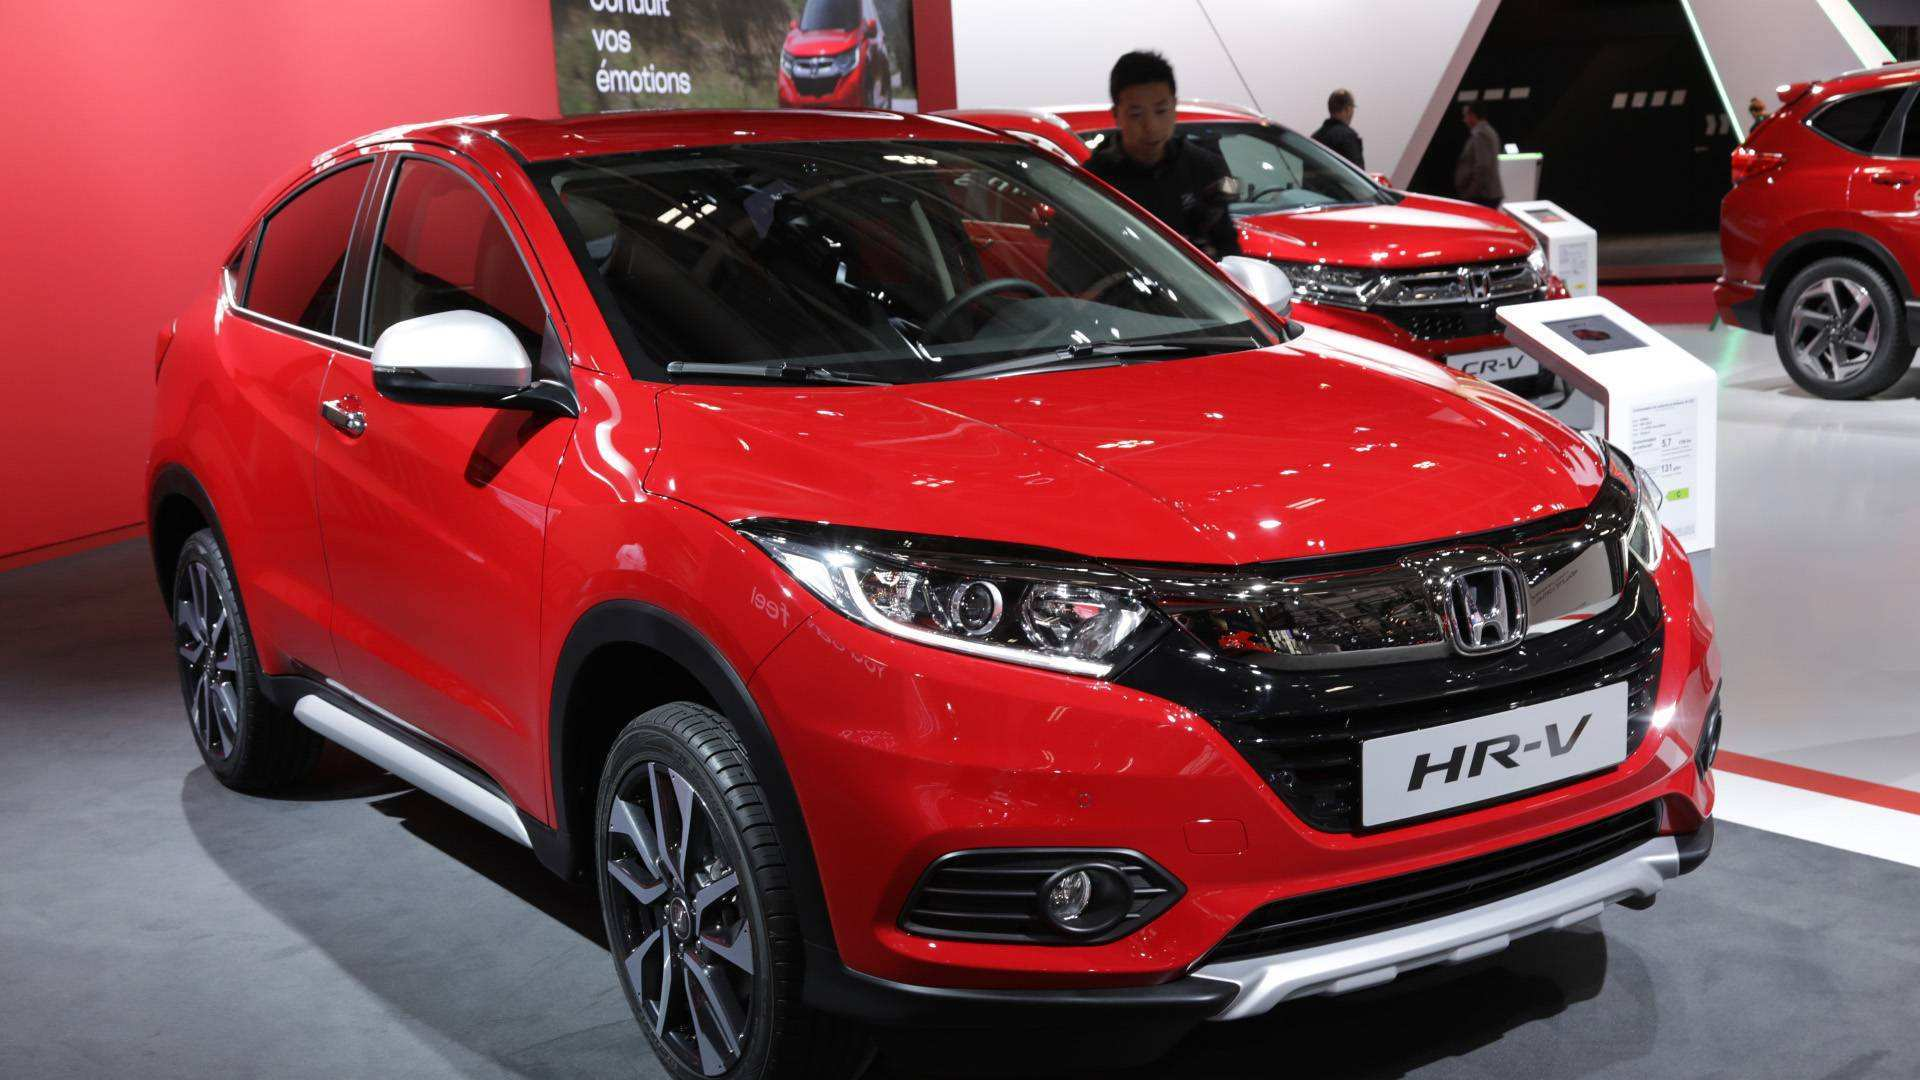 88 All New 2019 Honda Hrv Redesign New Concept with 2019 Honda Hrv Redesign